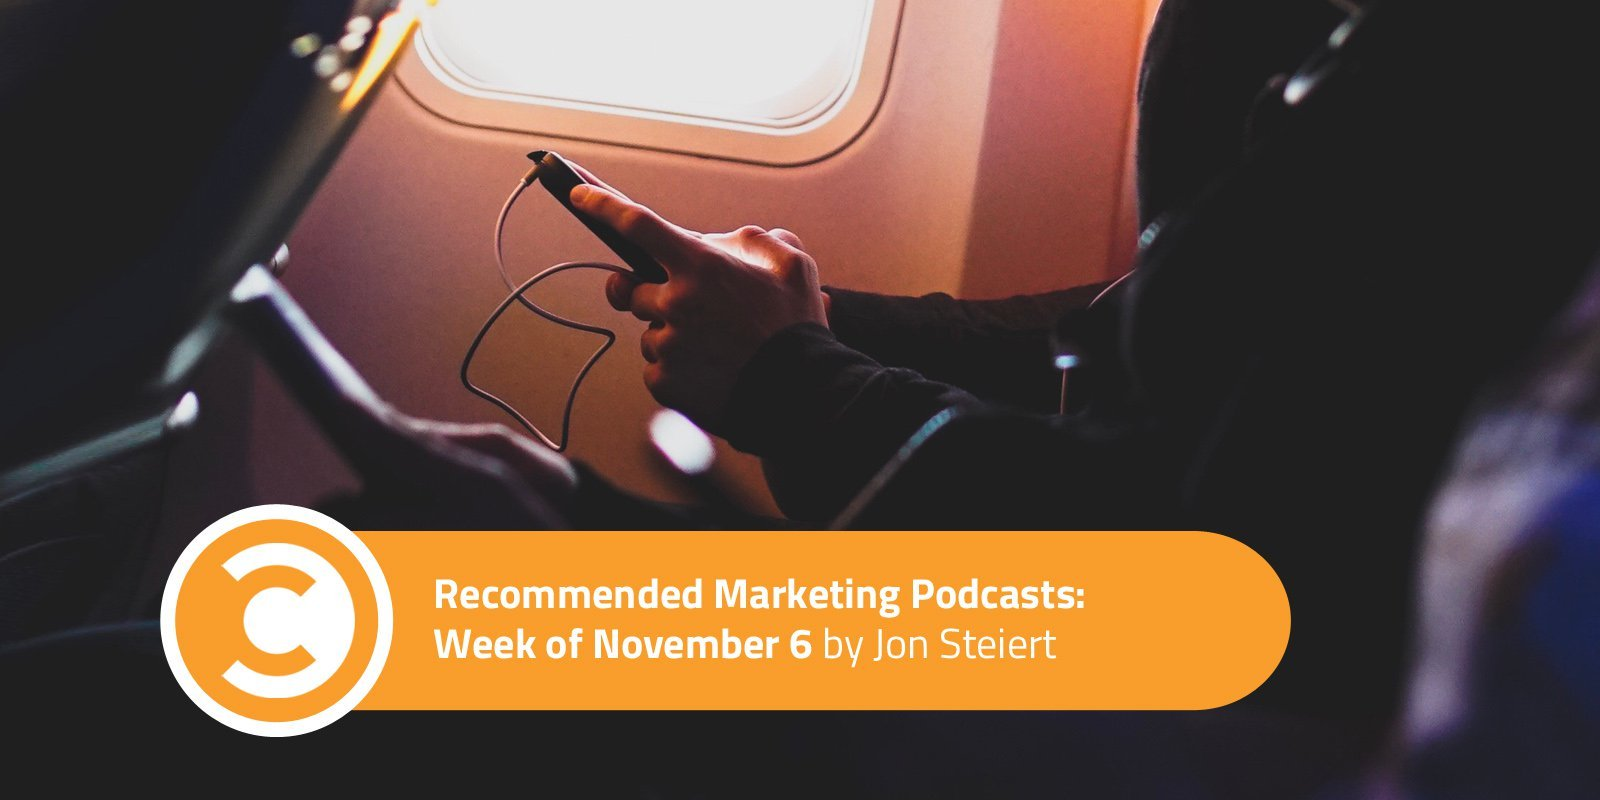 Recommended Marketing Podcasts: Week of November 6